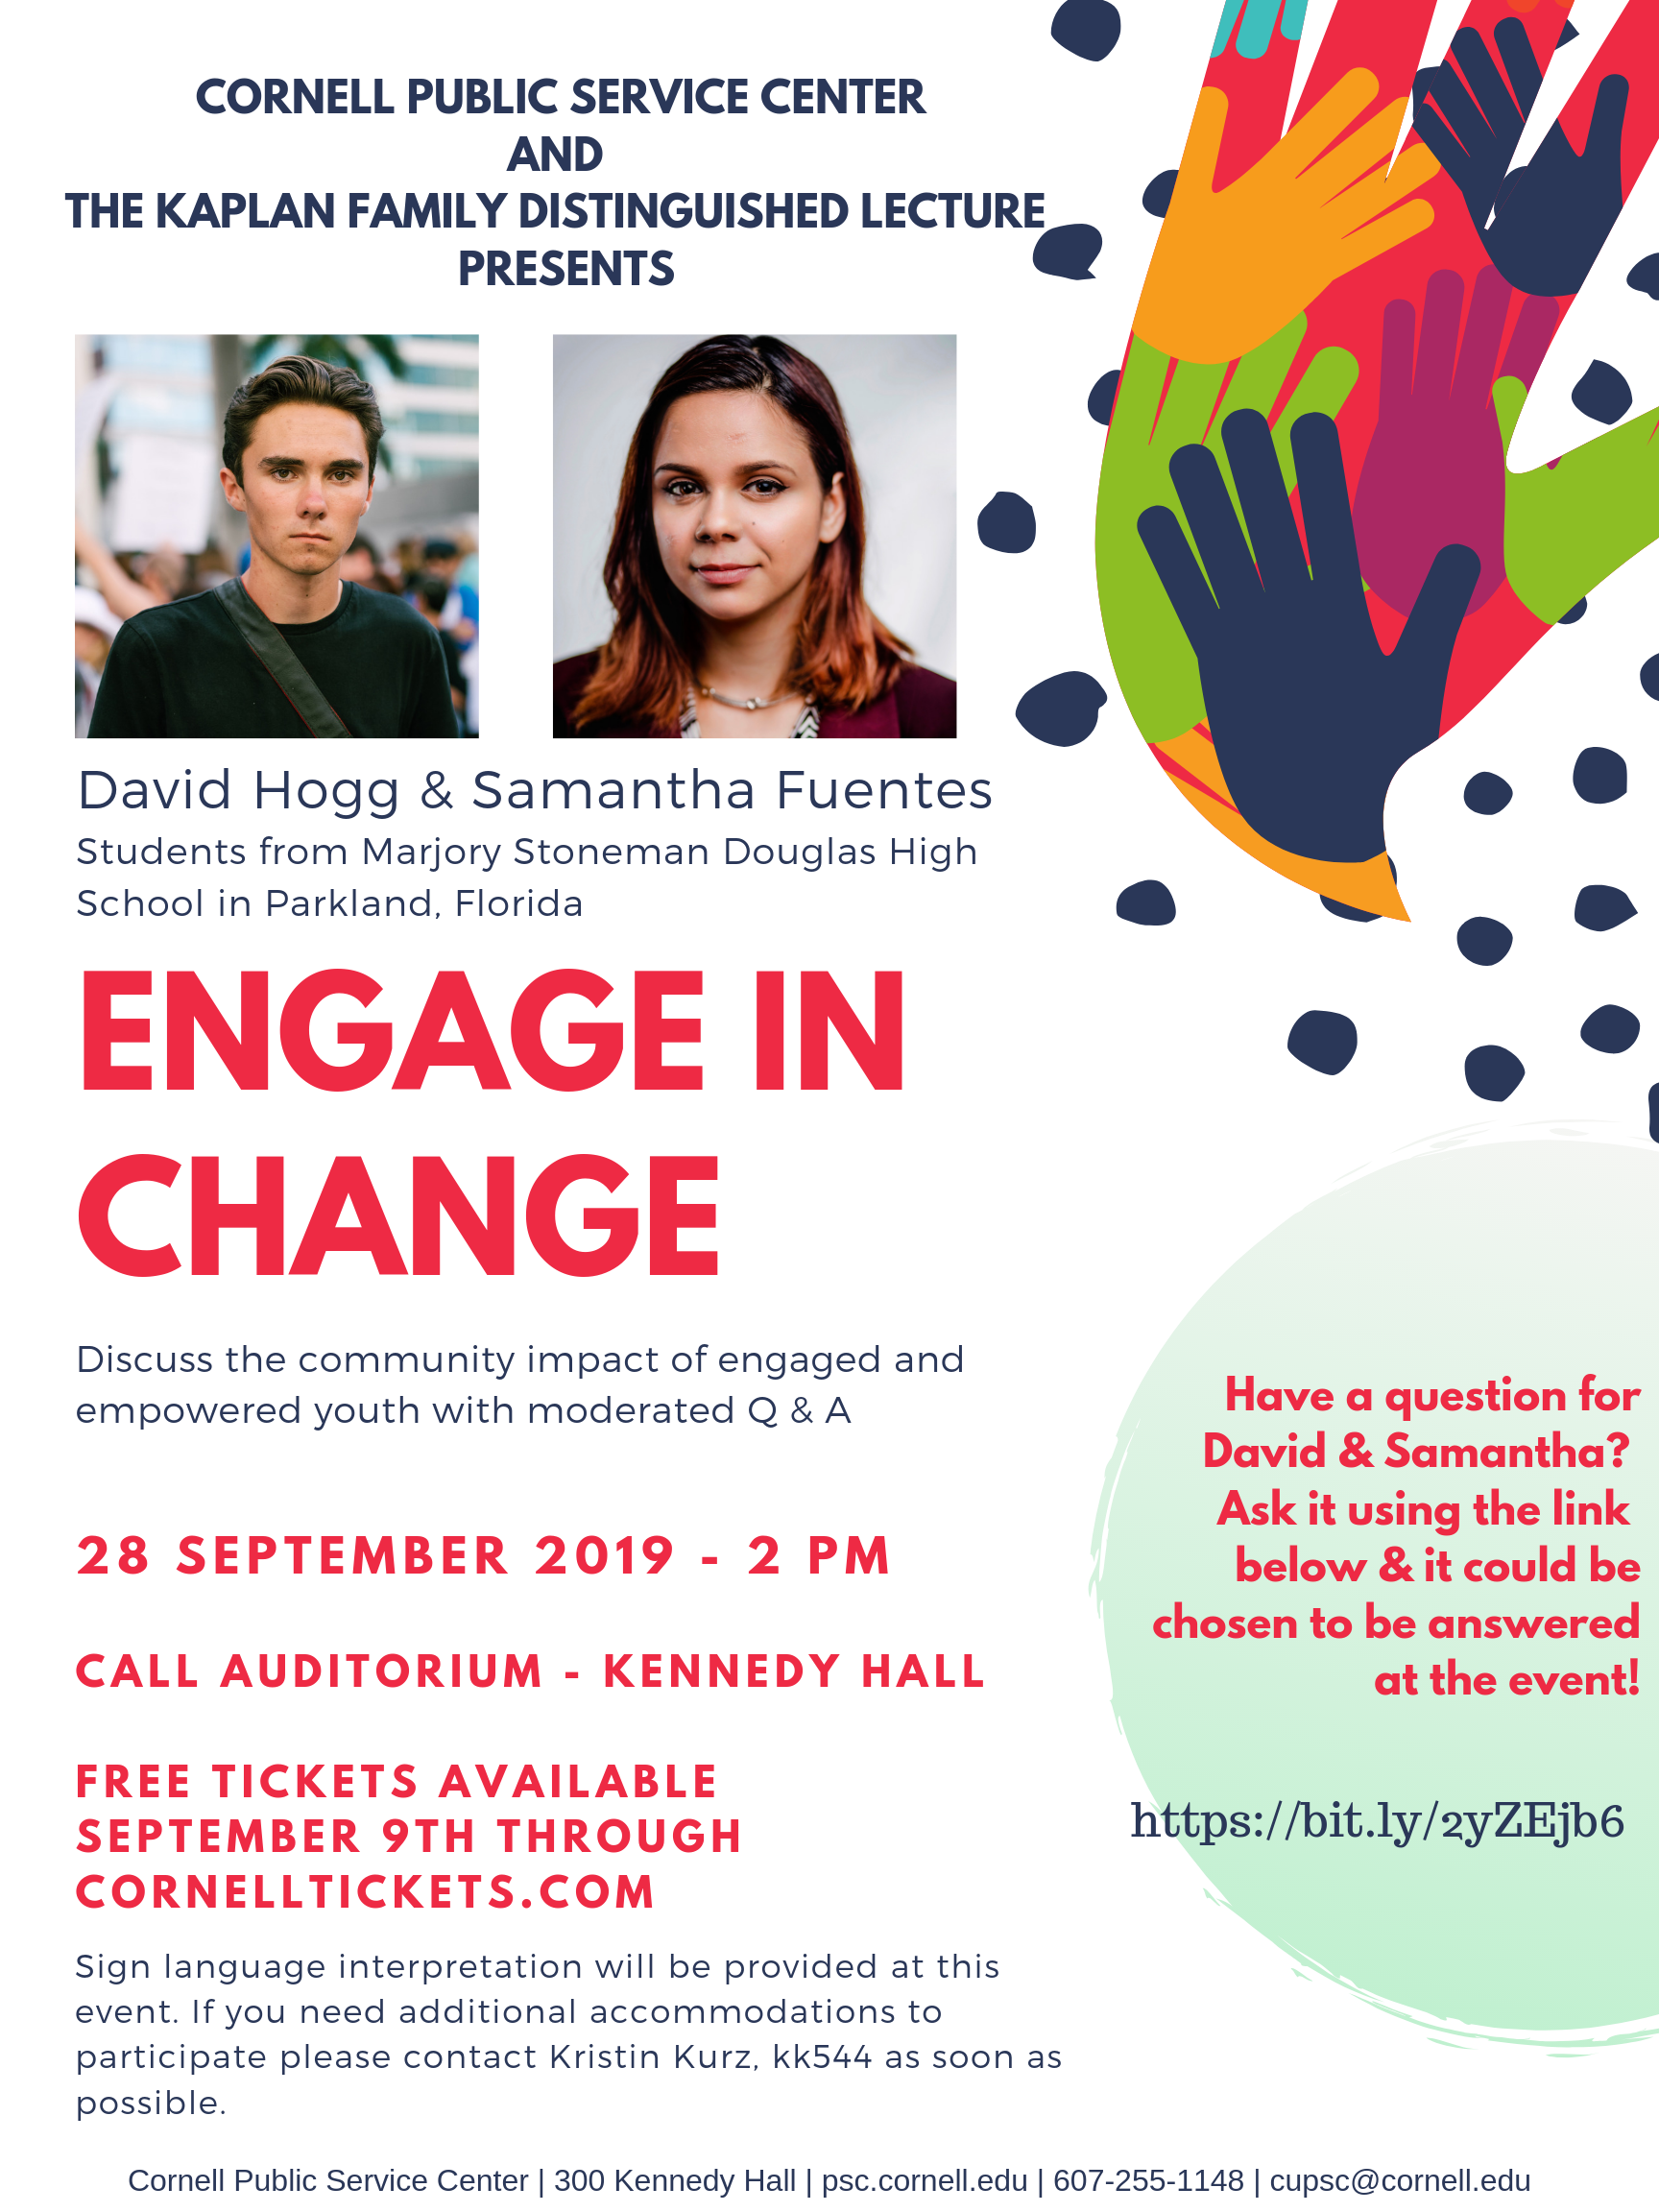 Free tickets available September 9 for the Engage in Change talk with David Hogg and Samantha Fuentes.